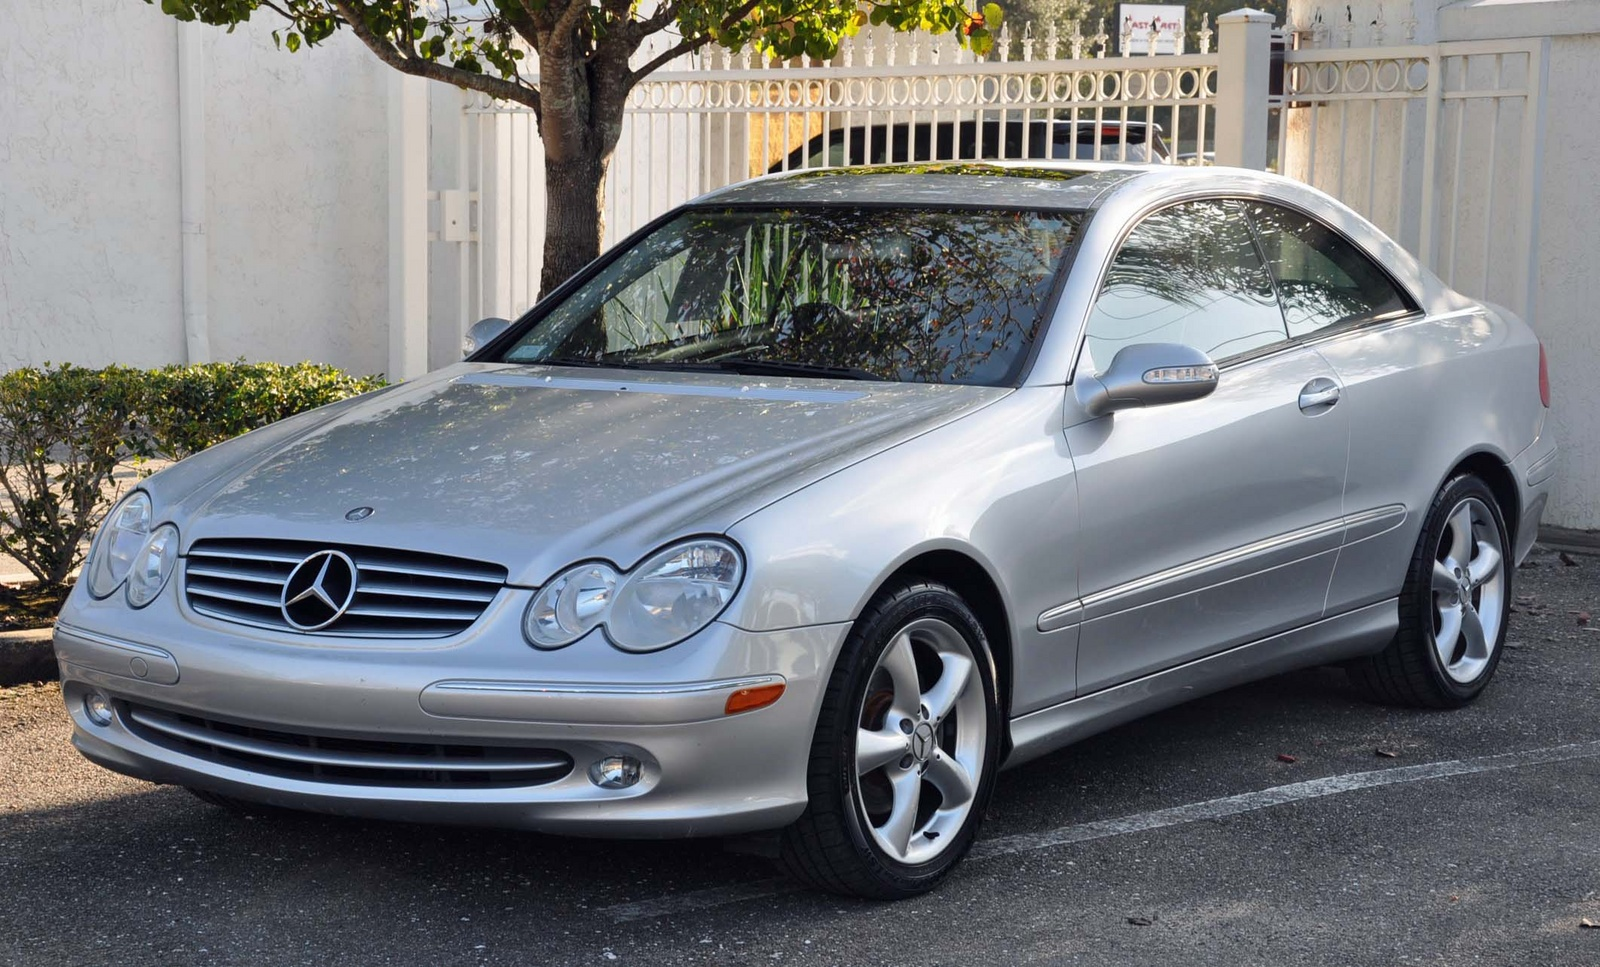 2005 mercedes benz clk class photos informations articles. Black Bedroom Furniture Sets. Home Design Ideas